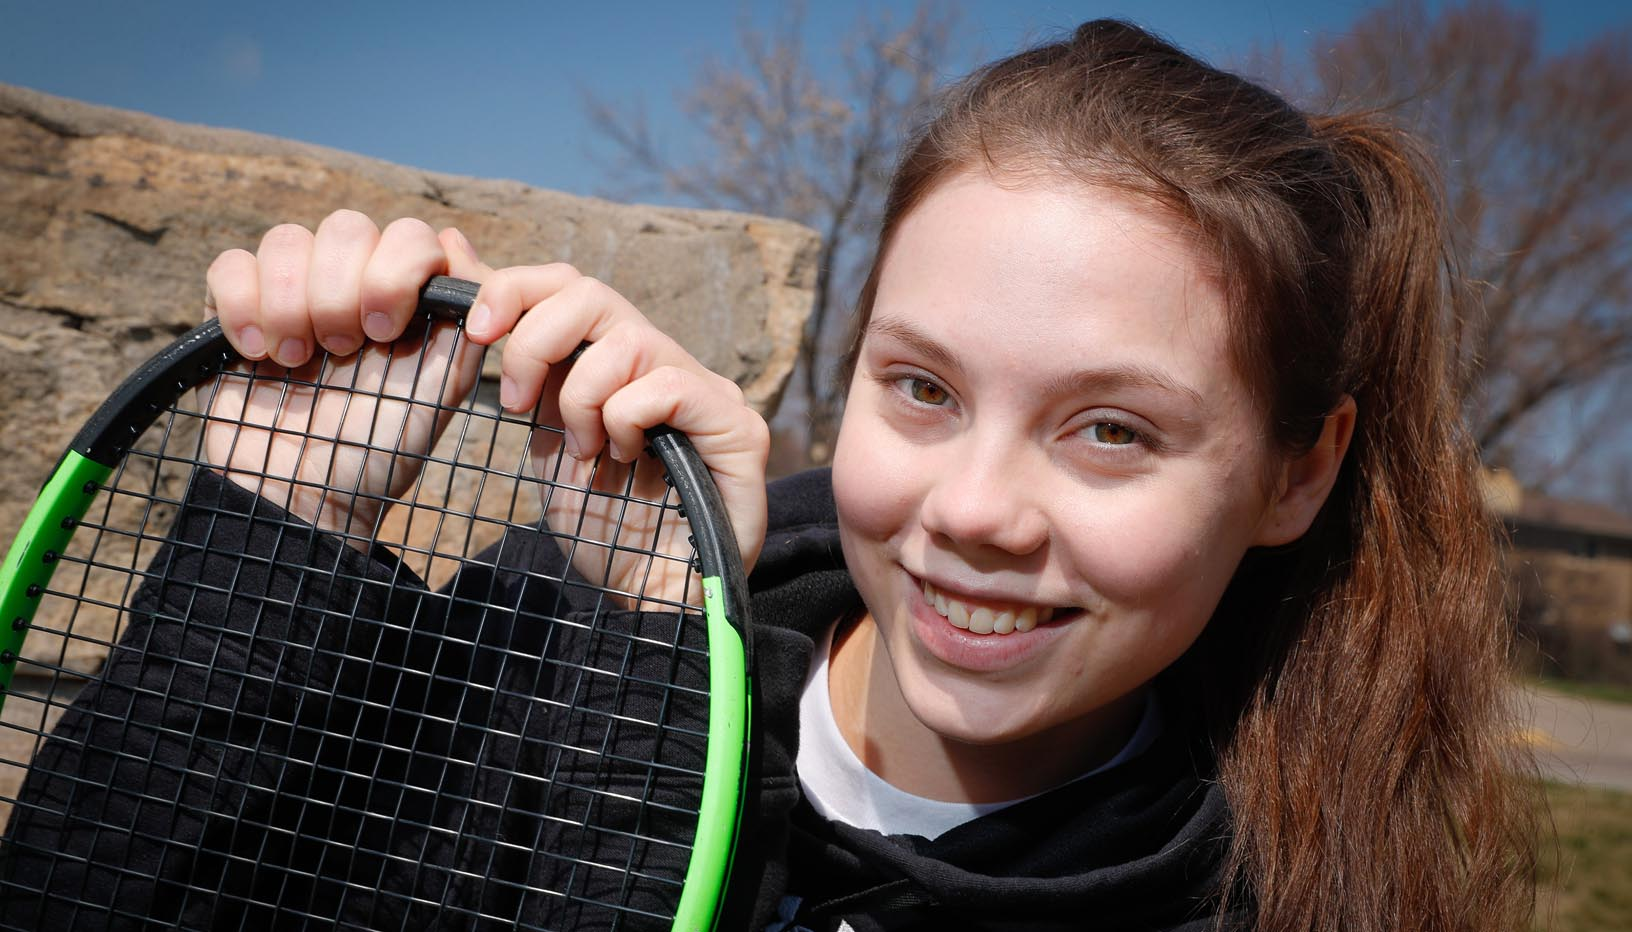 "Vasilisa Polunova, who moved from Russia to Kearney nearly a year ago, is enjoying the team aspect of collegiate tennis after a successful junior tennis career. ""It's like a family,"" she said of the UNK women's tennis team. ""They always support you and you can always talk to them."" (Photo by Corbey R. Dorsey, UNK Communications)"